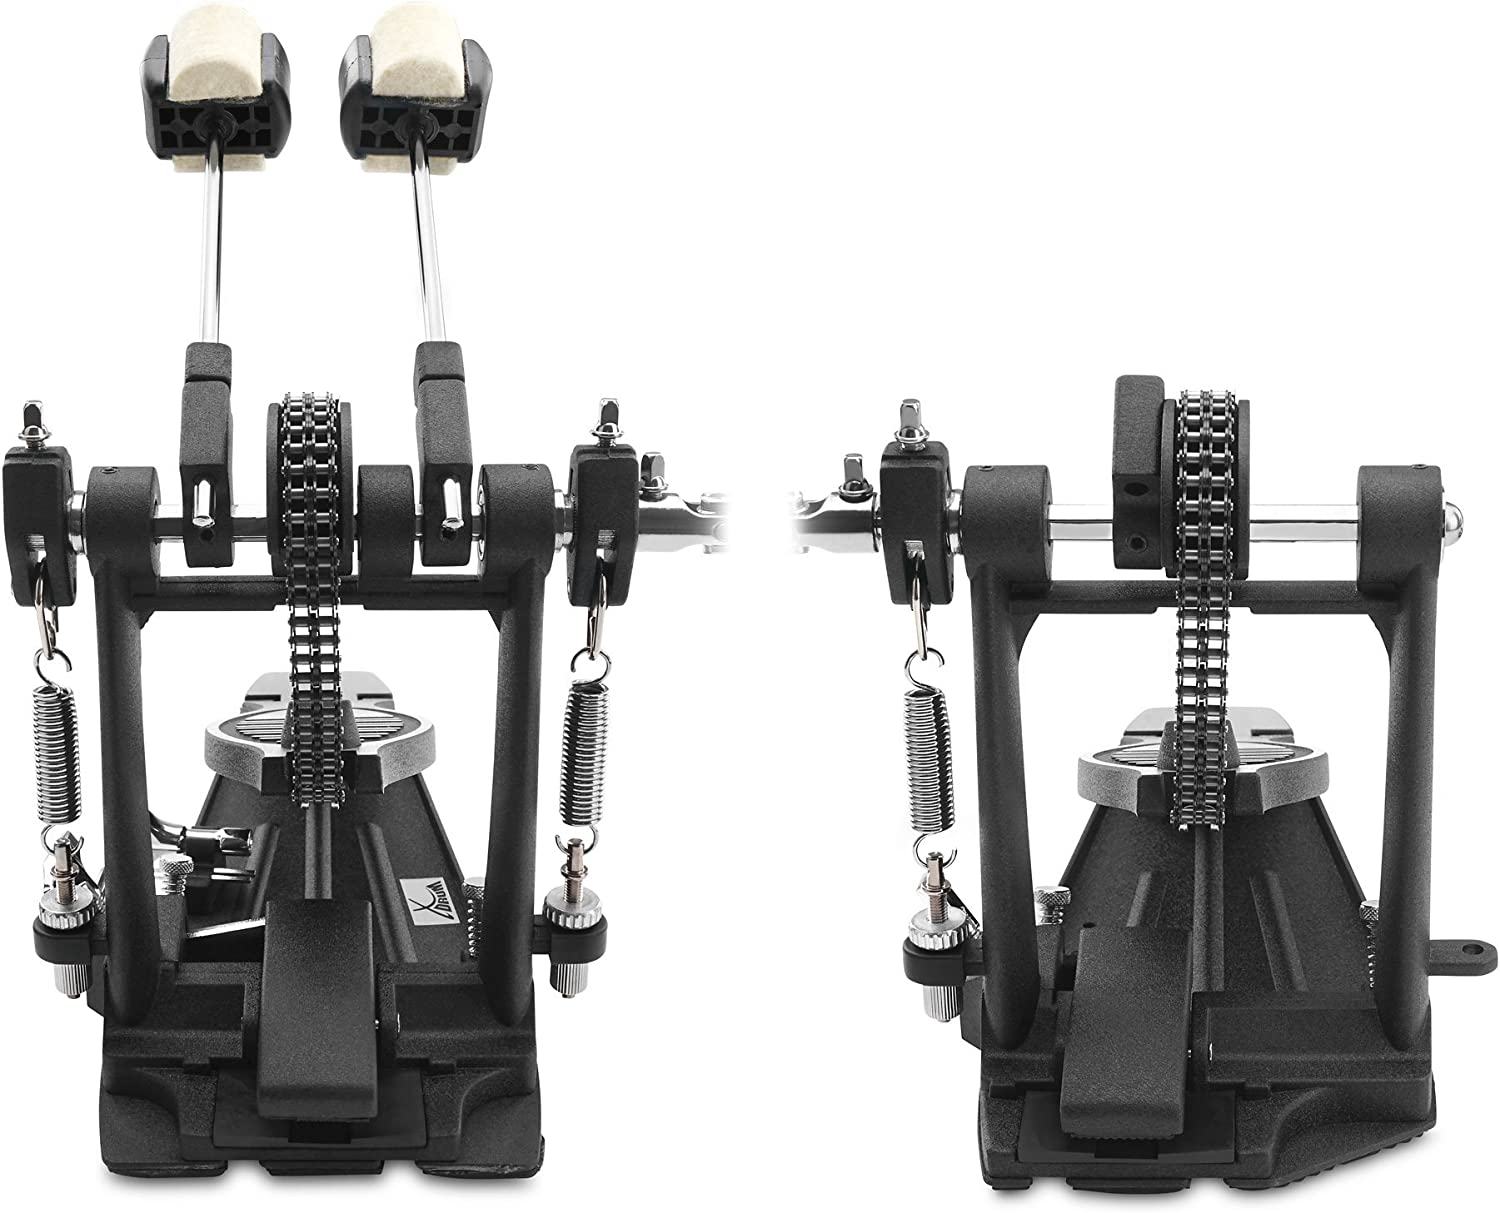 XDrum Pro Double Bass Drum Pedal